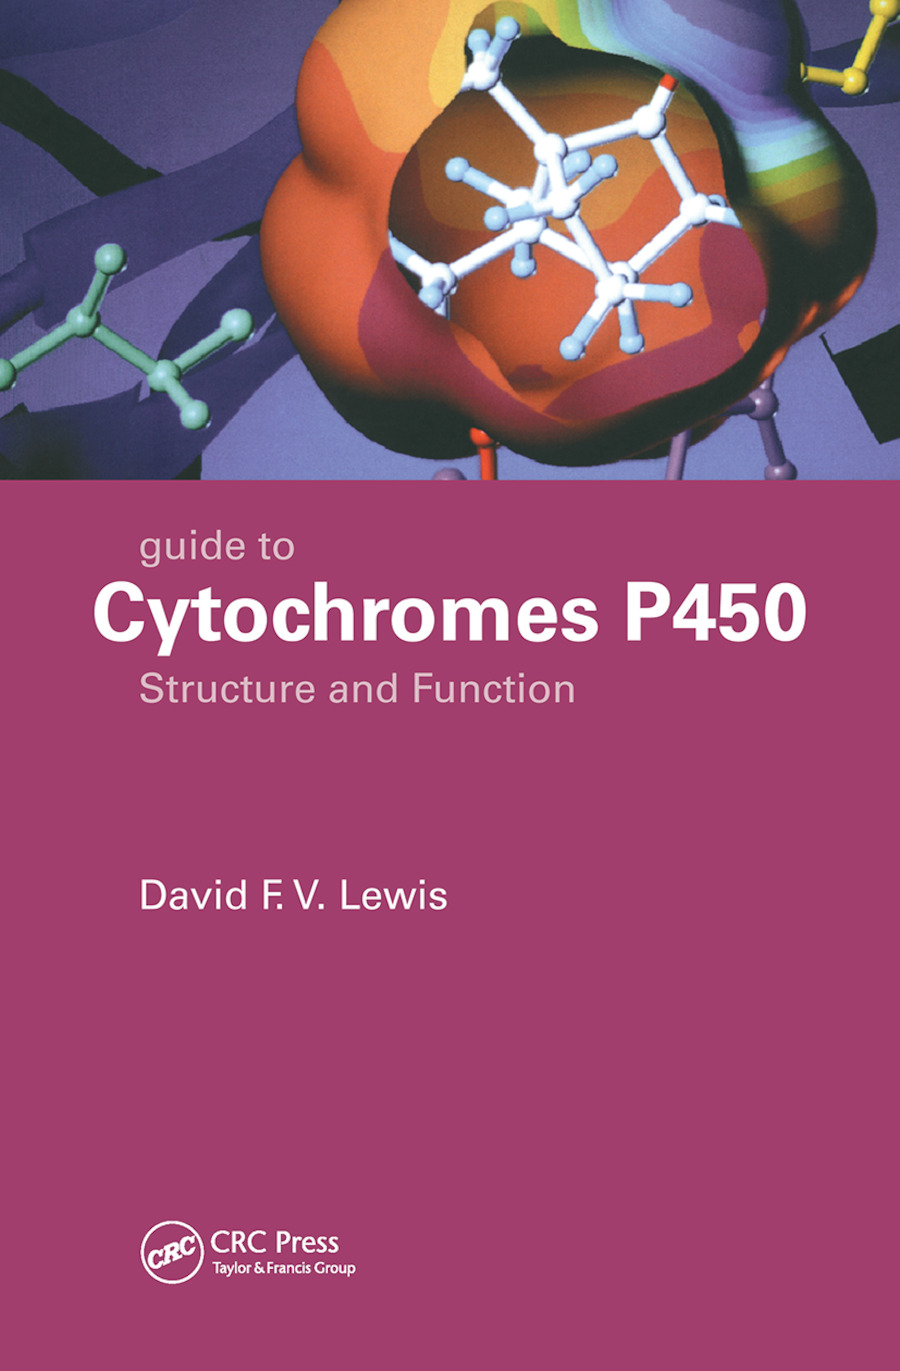 Guide to Cytochromes P450